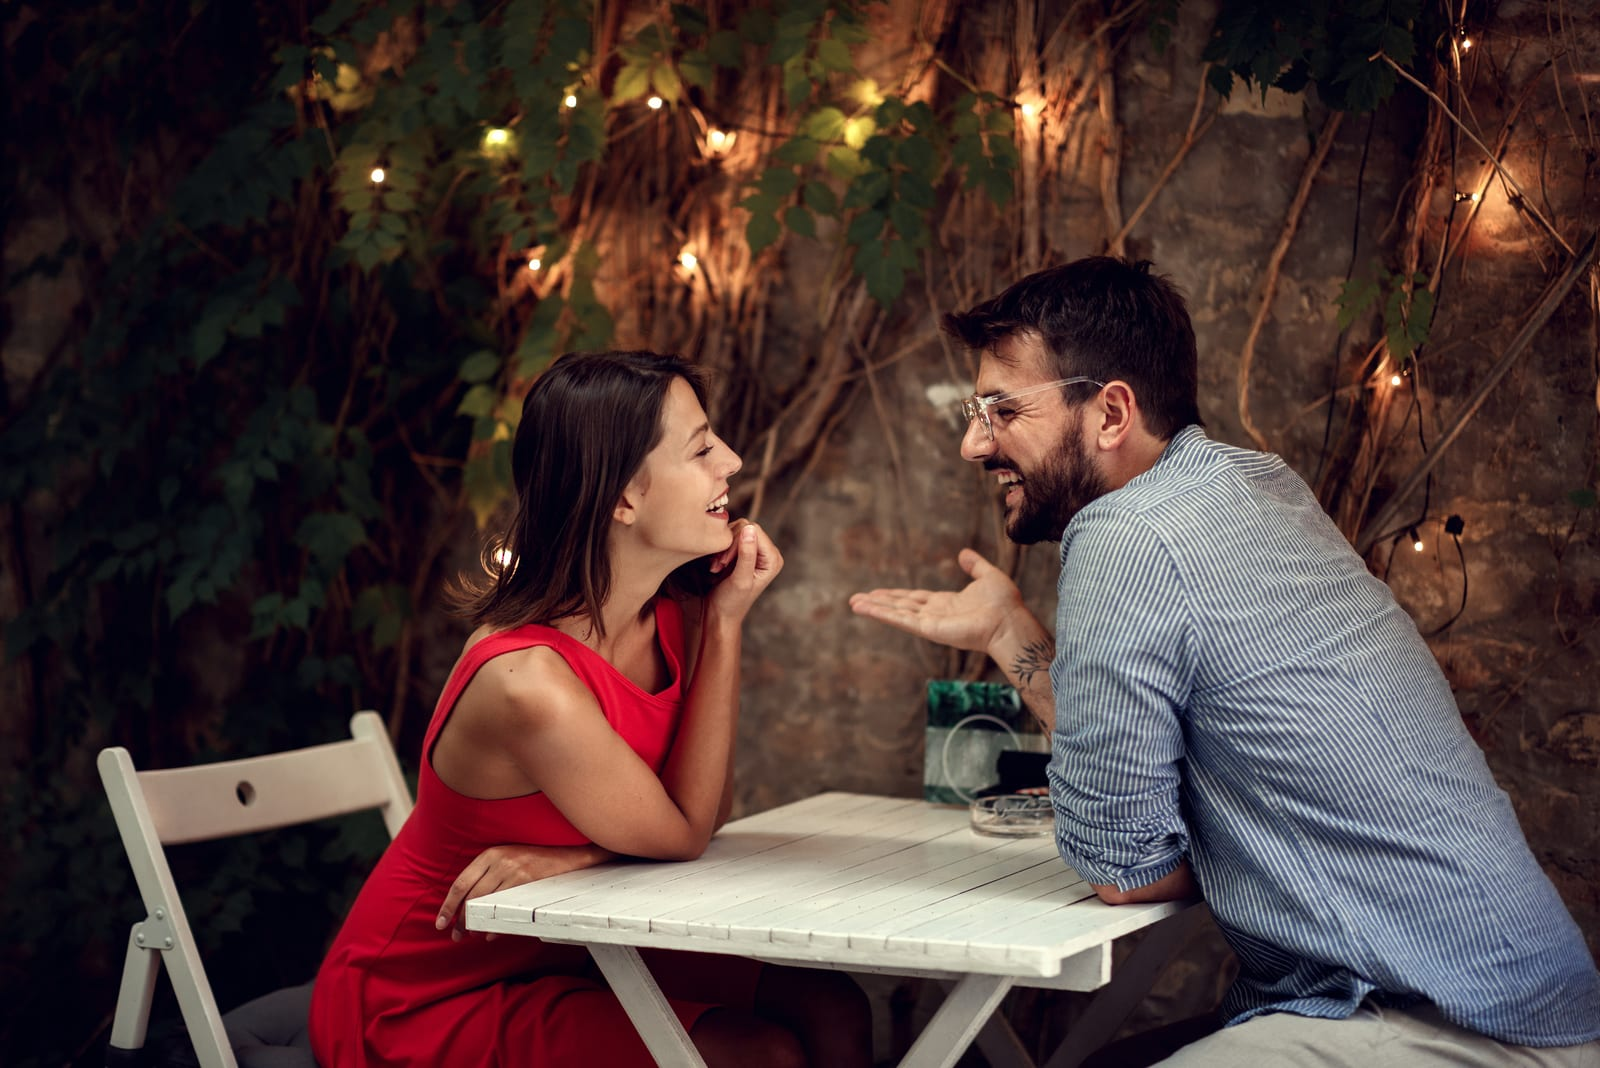 smiling man flirting with woman